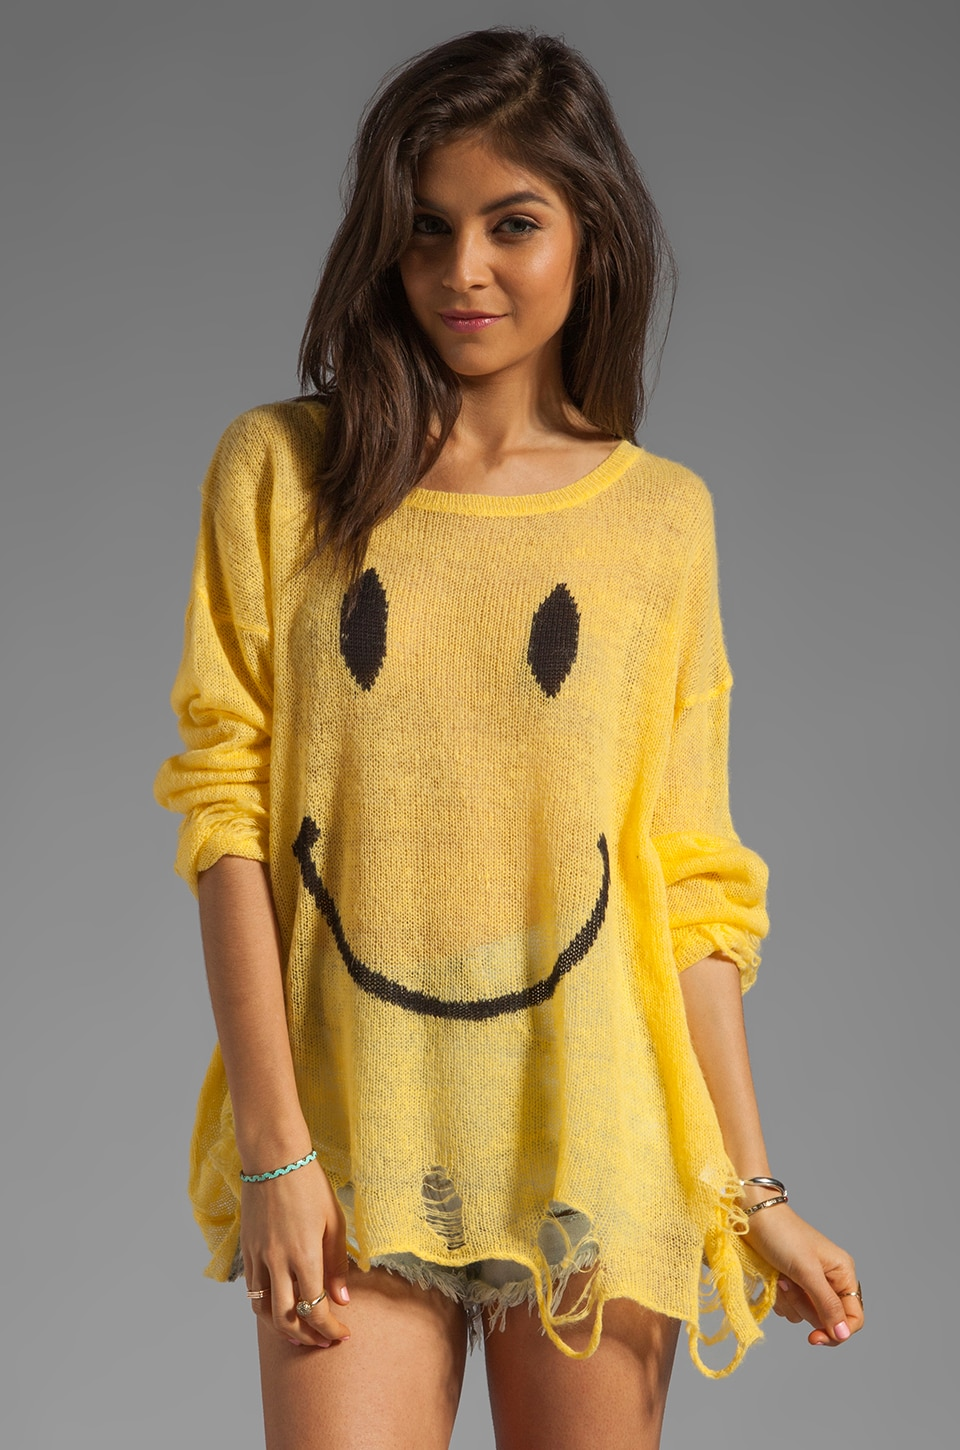 Wildfox Couture White Label 90's Smile Lennon Sweater in Happy Face